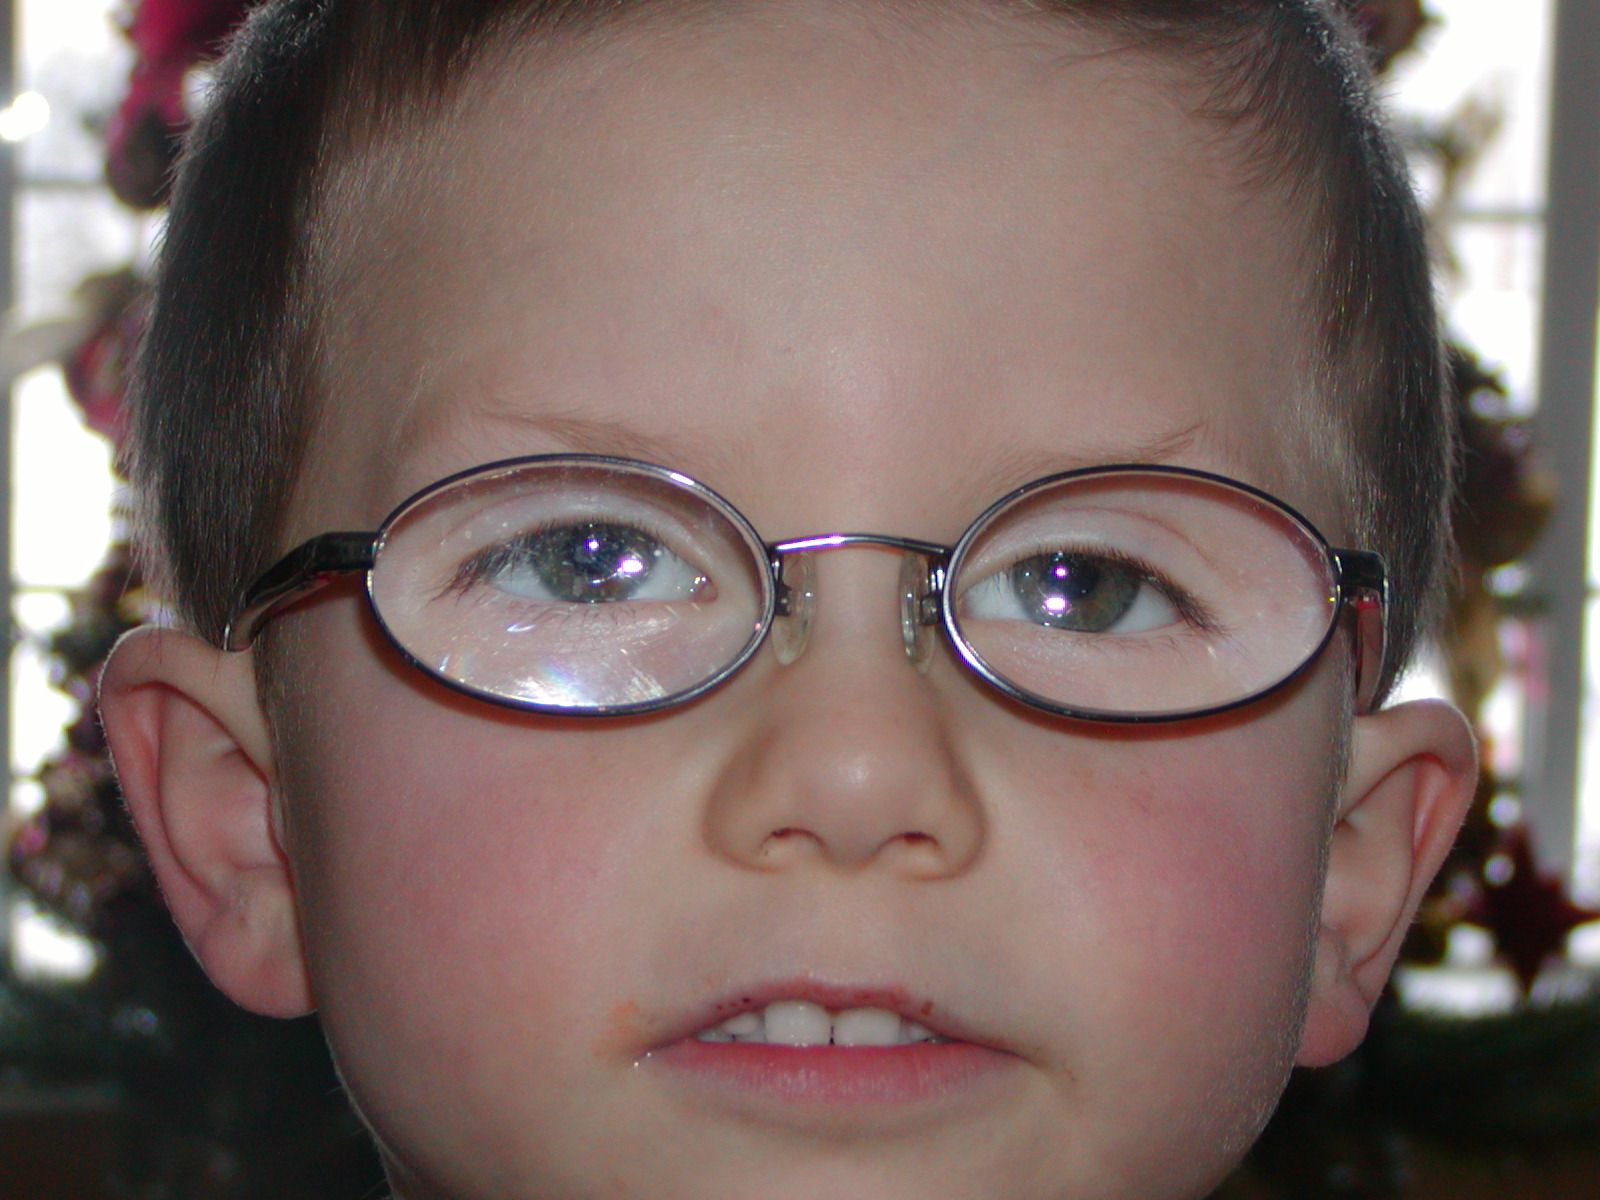 picture of a farsighted boy with glasses - prescription +9 and +10